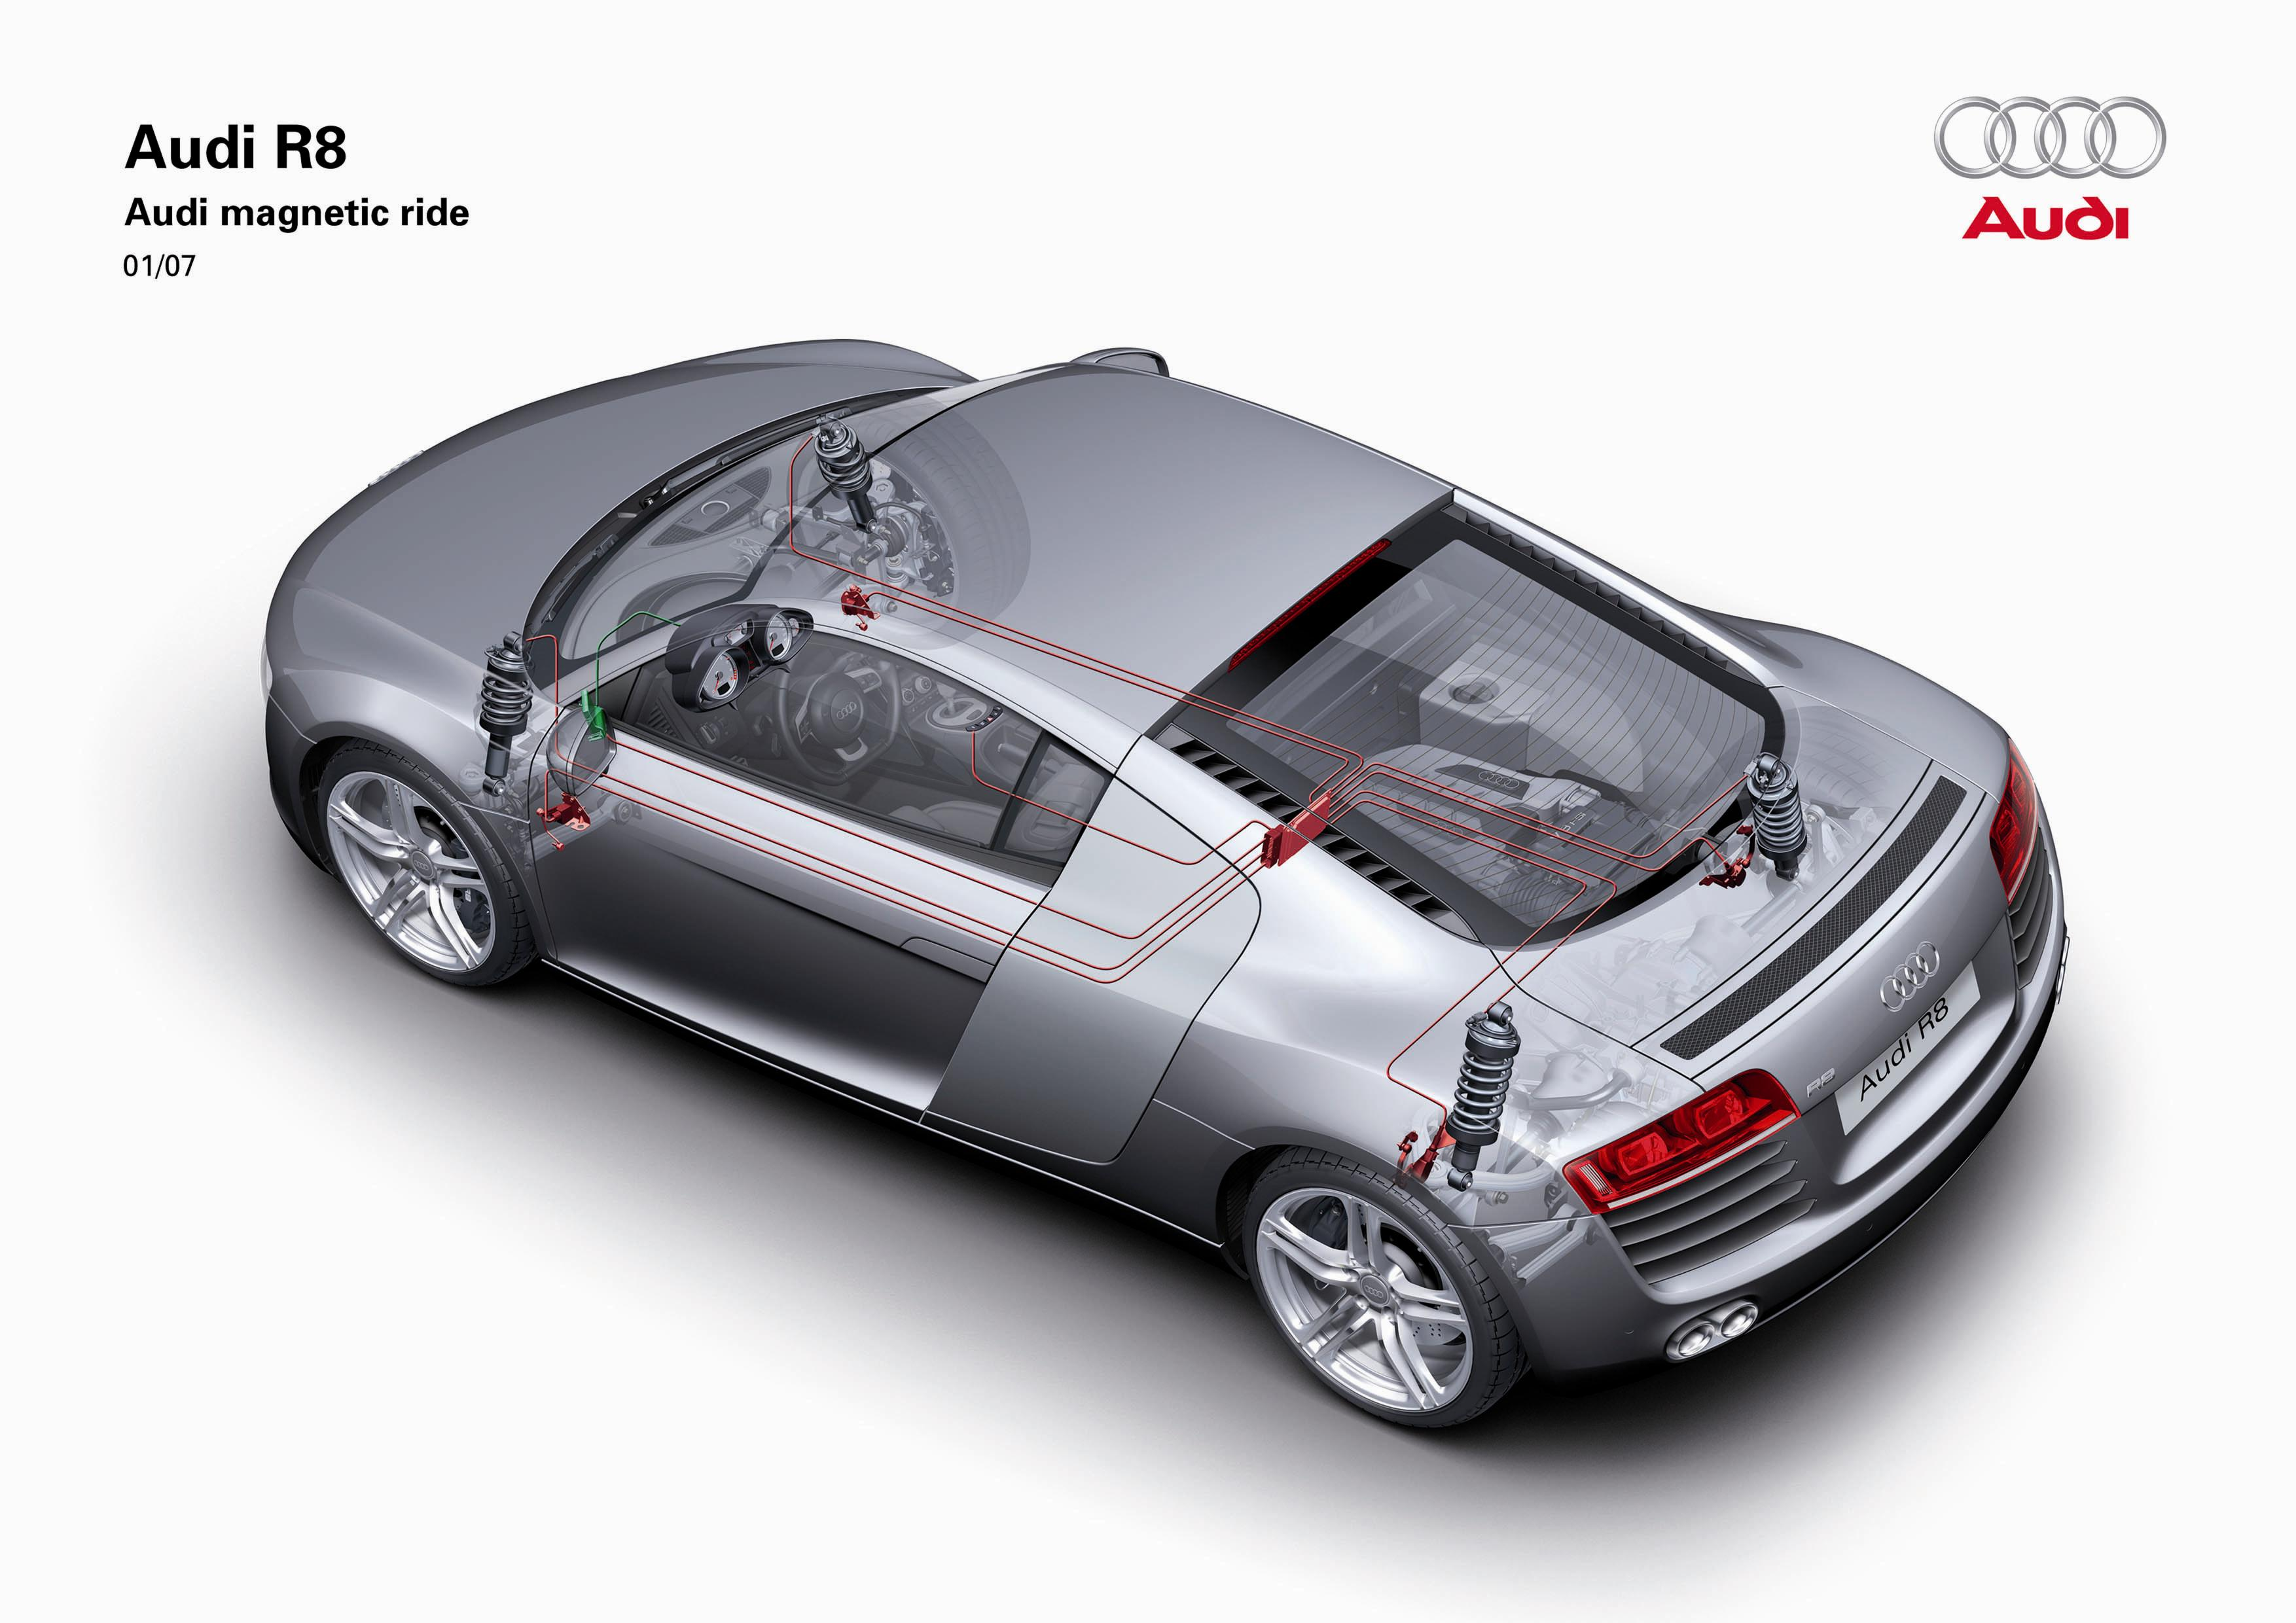 2008 Audi R8 | Top Speed. »